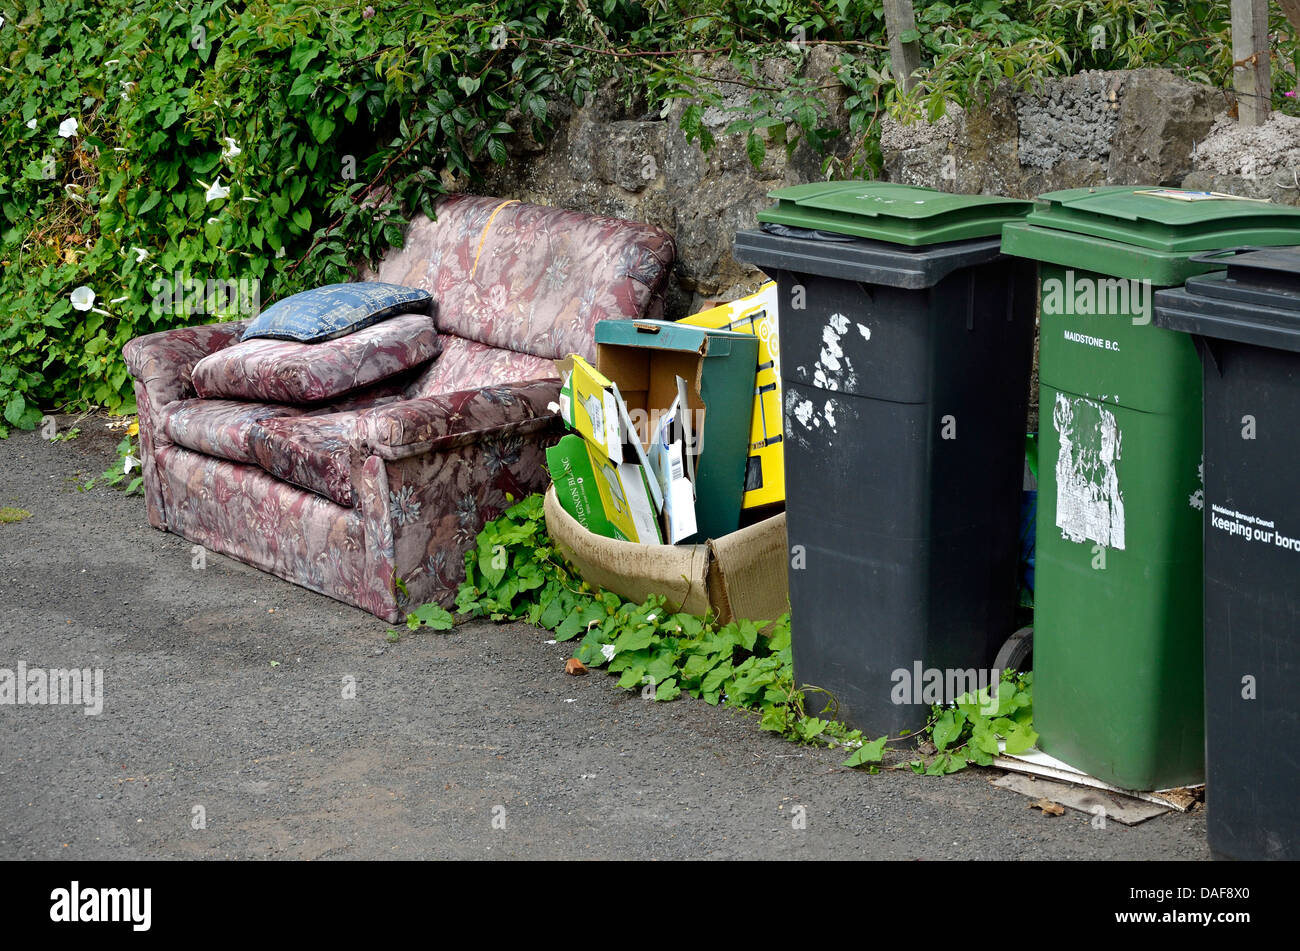 Maidstone, Kent, England. Household rubbish bins and discarded furniture - Stock Image